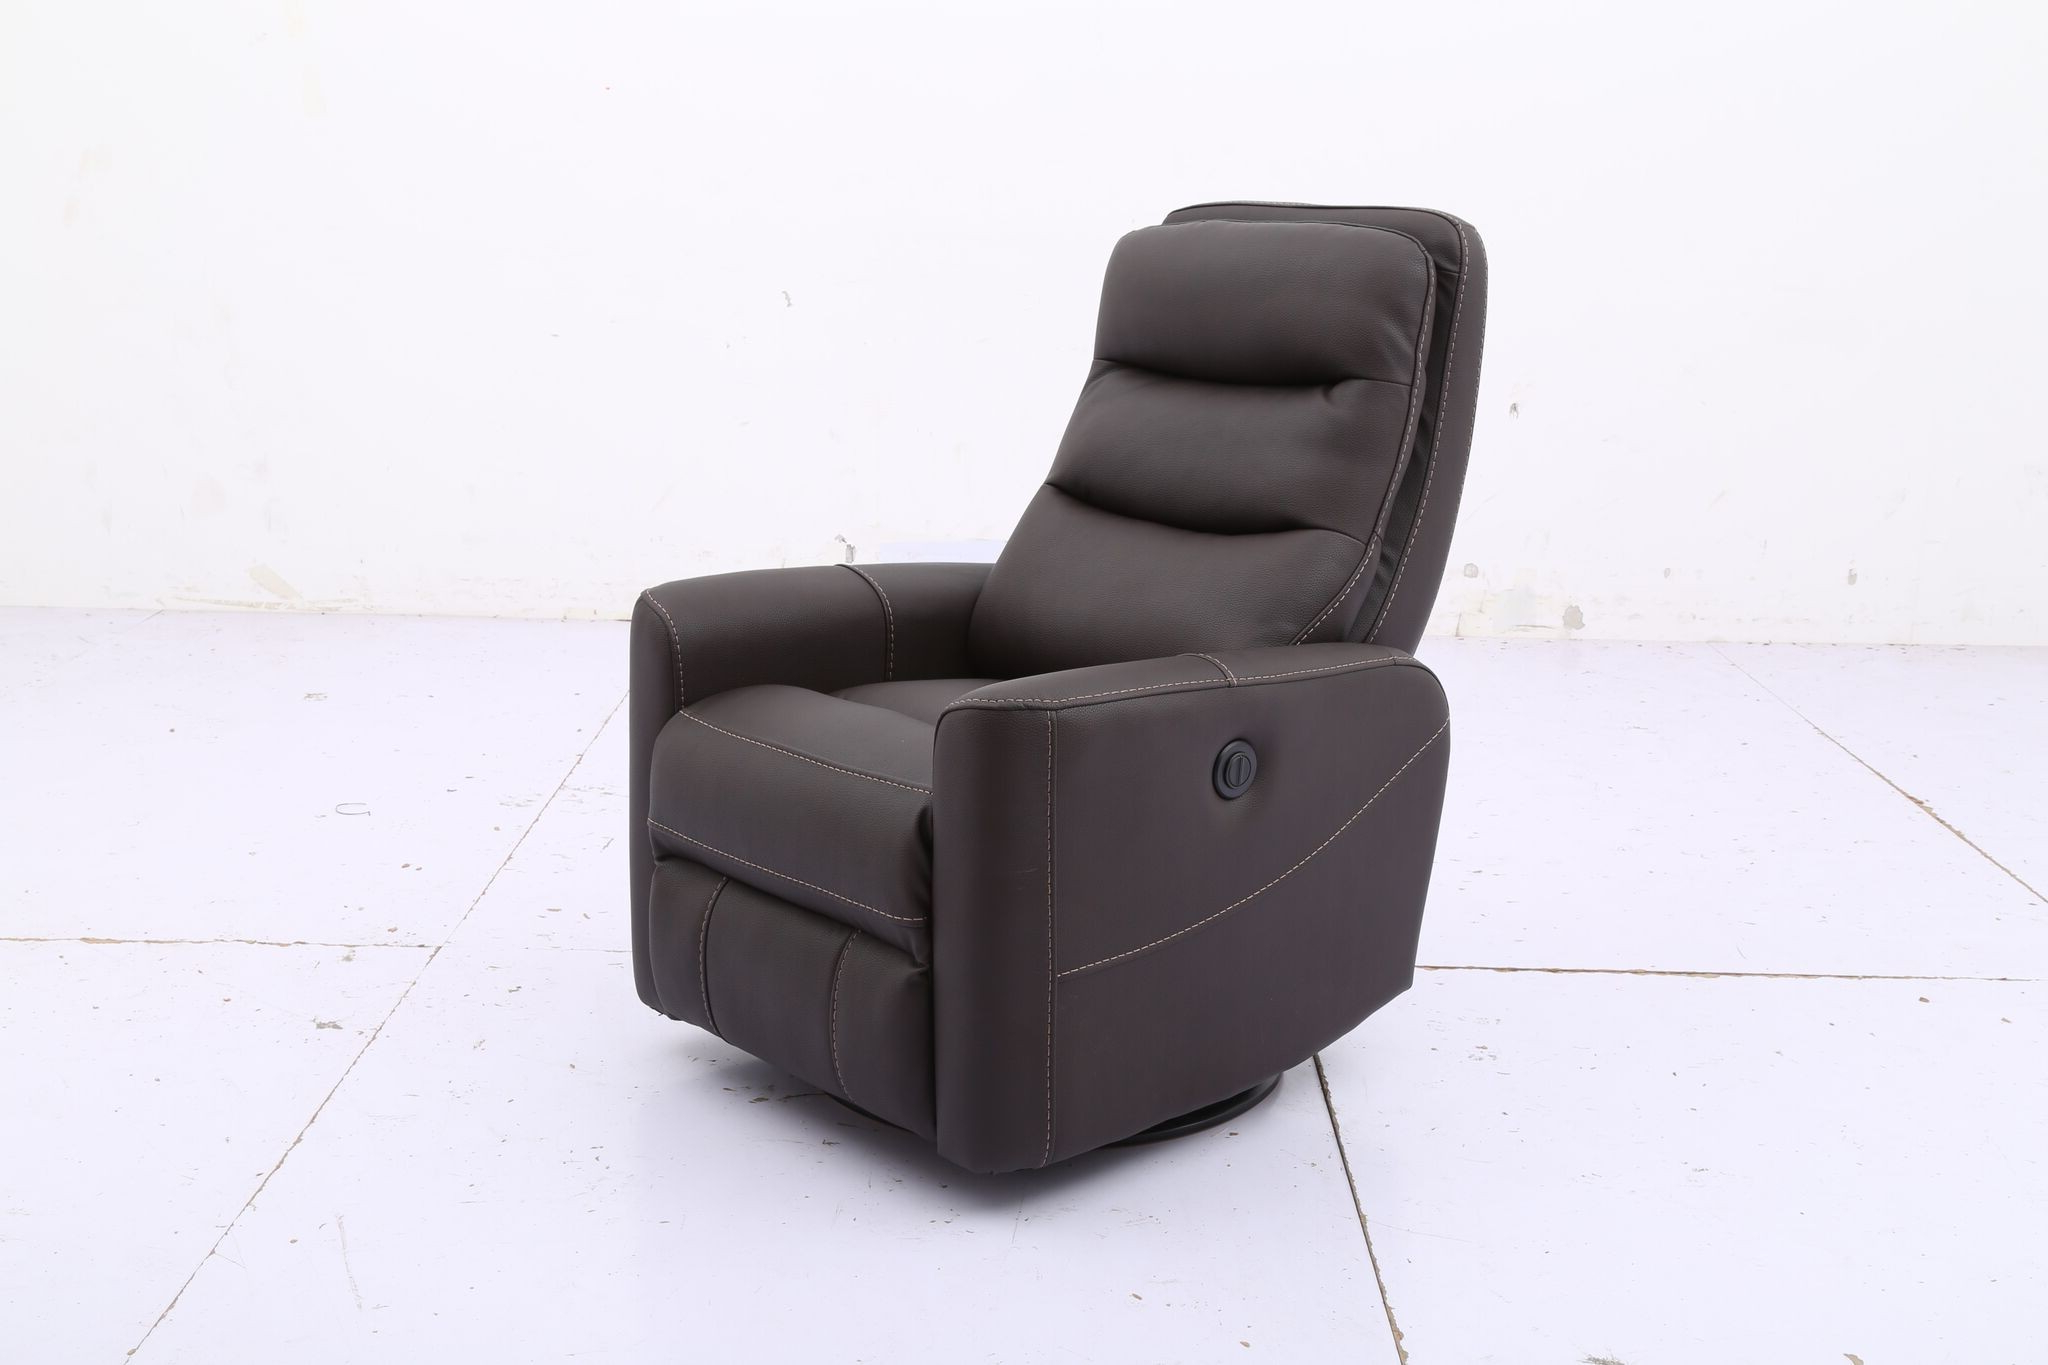 Widely Used Hercules Chocolate Swivel Power Recliner With Regard To Hercules Oyster Swivel Glider Recliners (View 8 of 20)